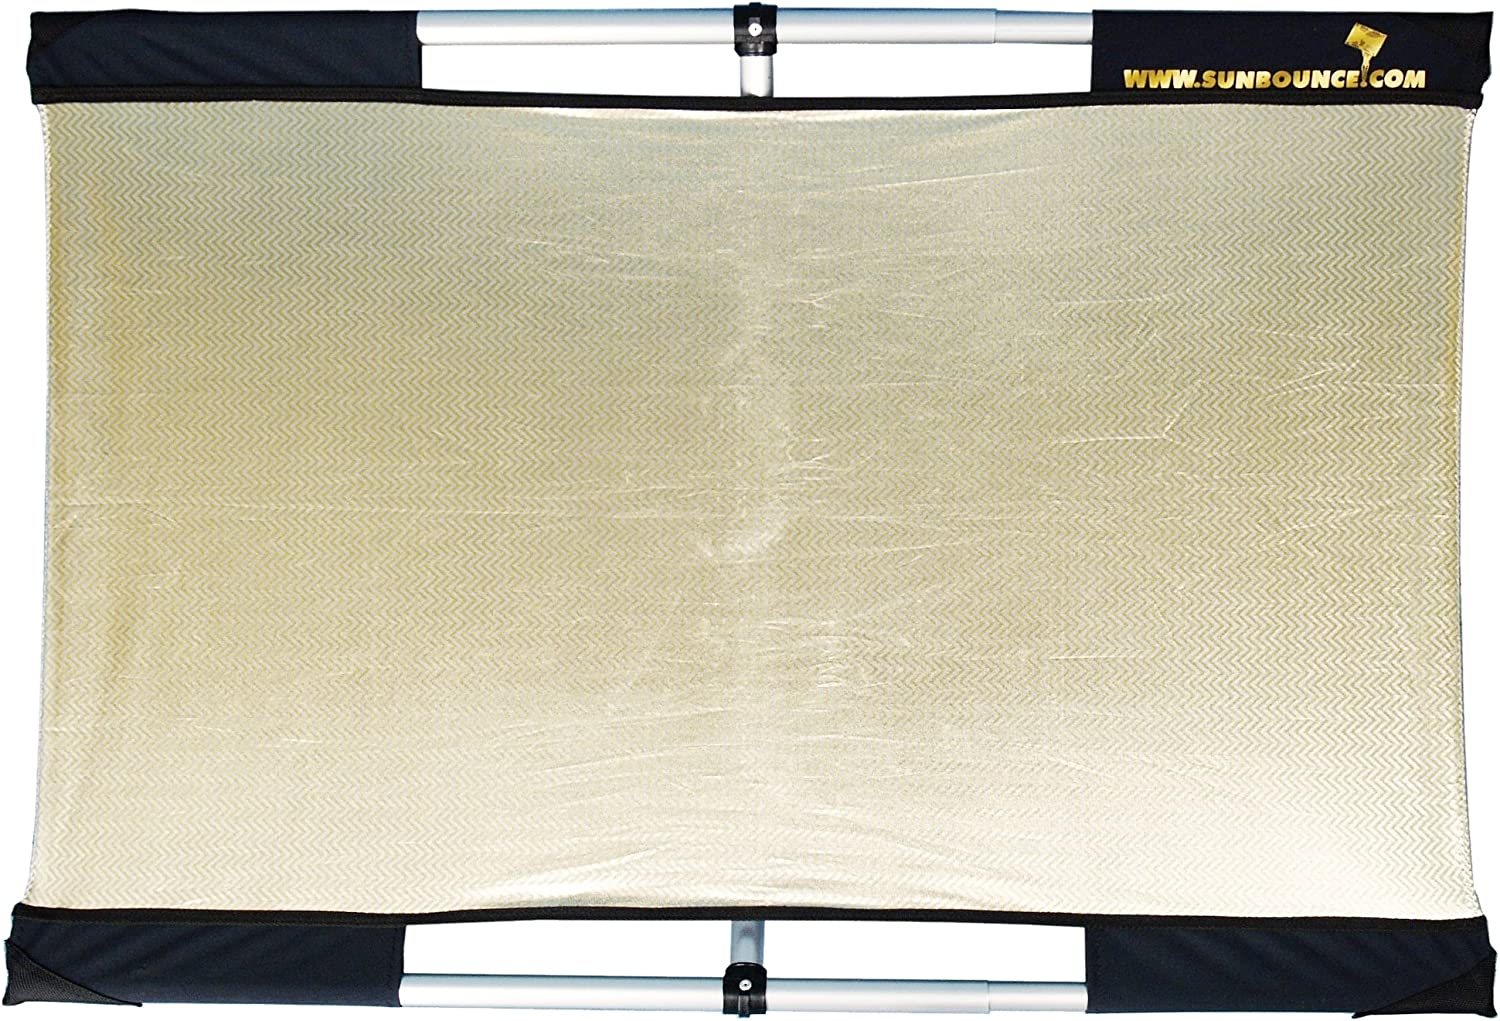 Reflector Panel Kit with Frame and Carry Bag Zebra//White California Sunbounce Micro Mini Kit 2 x 3 Feet